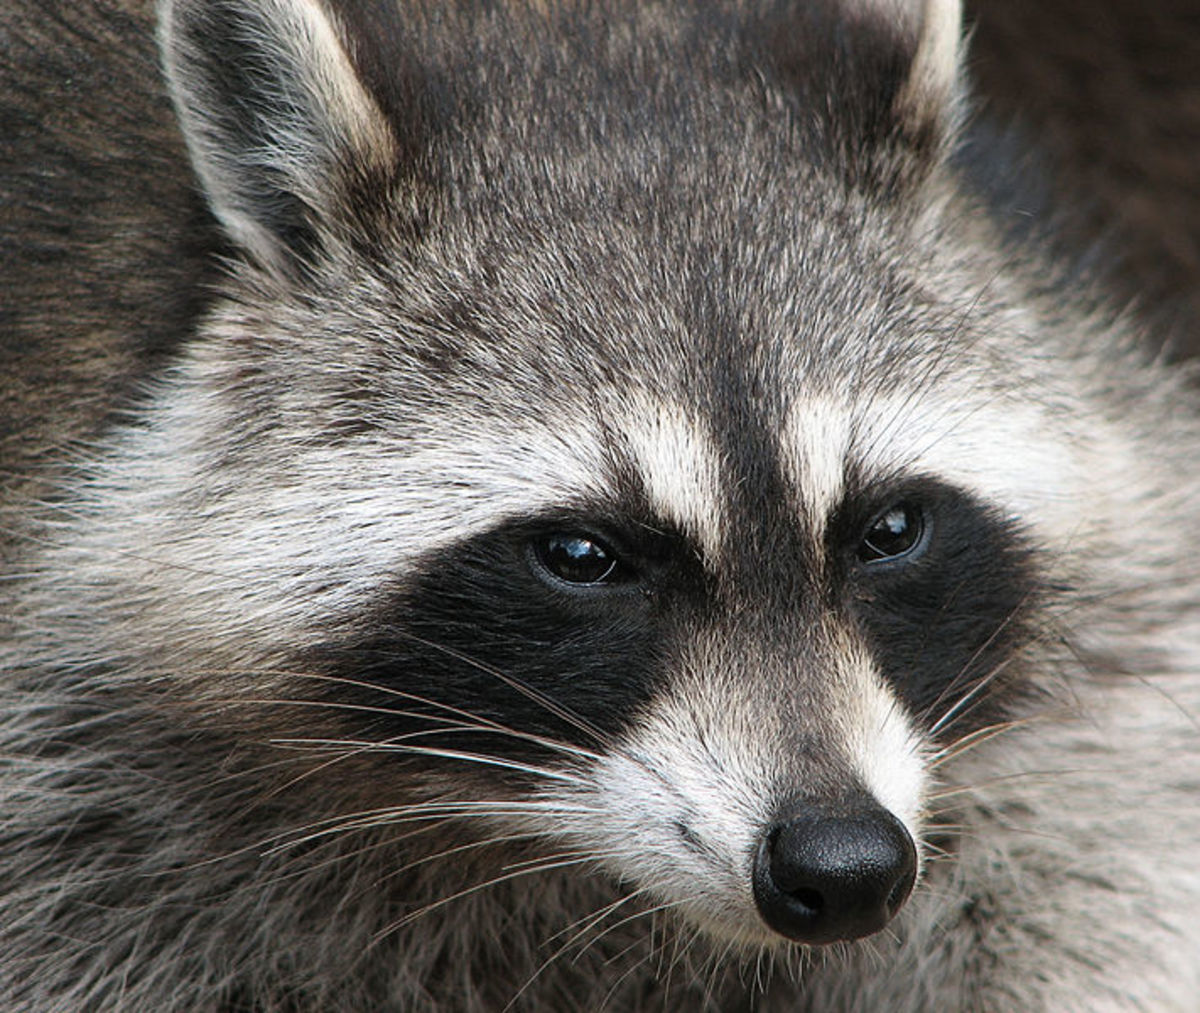 How Do You Get Rid of Raccoons? Tips and Tales of Raccoons and Cats